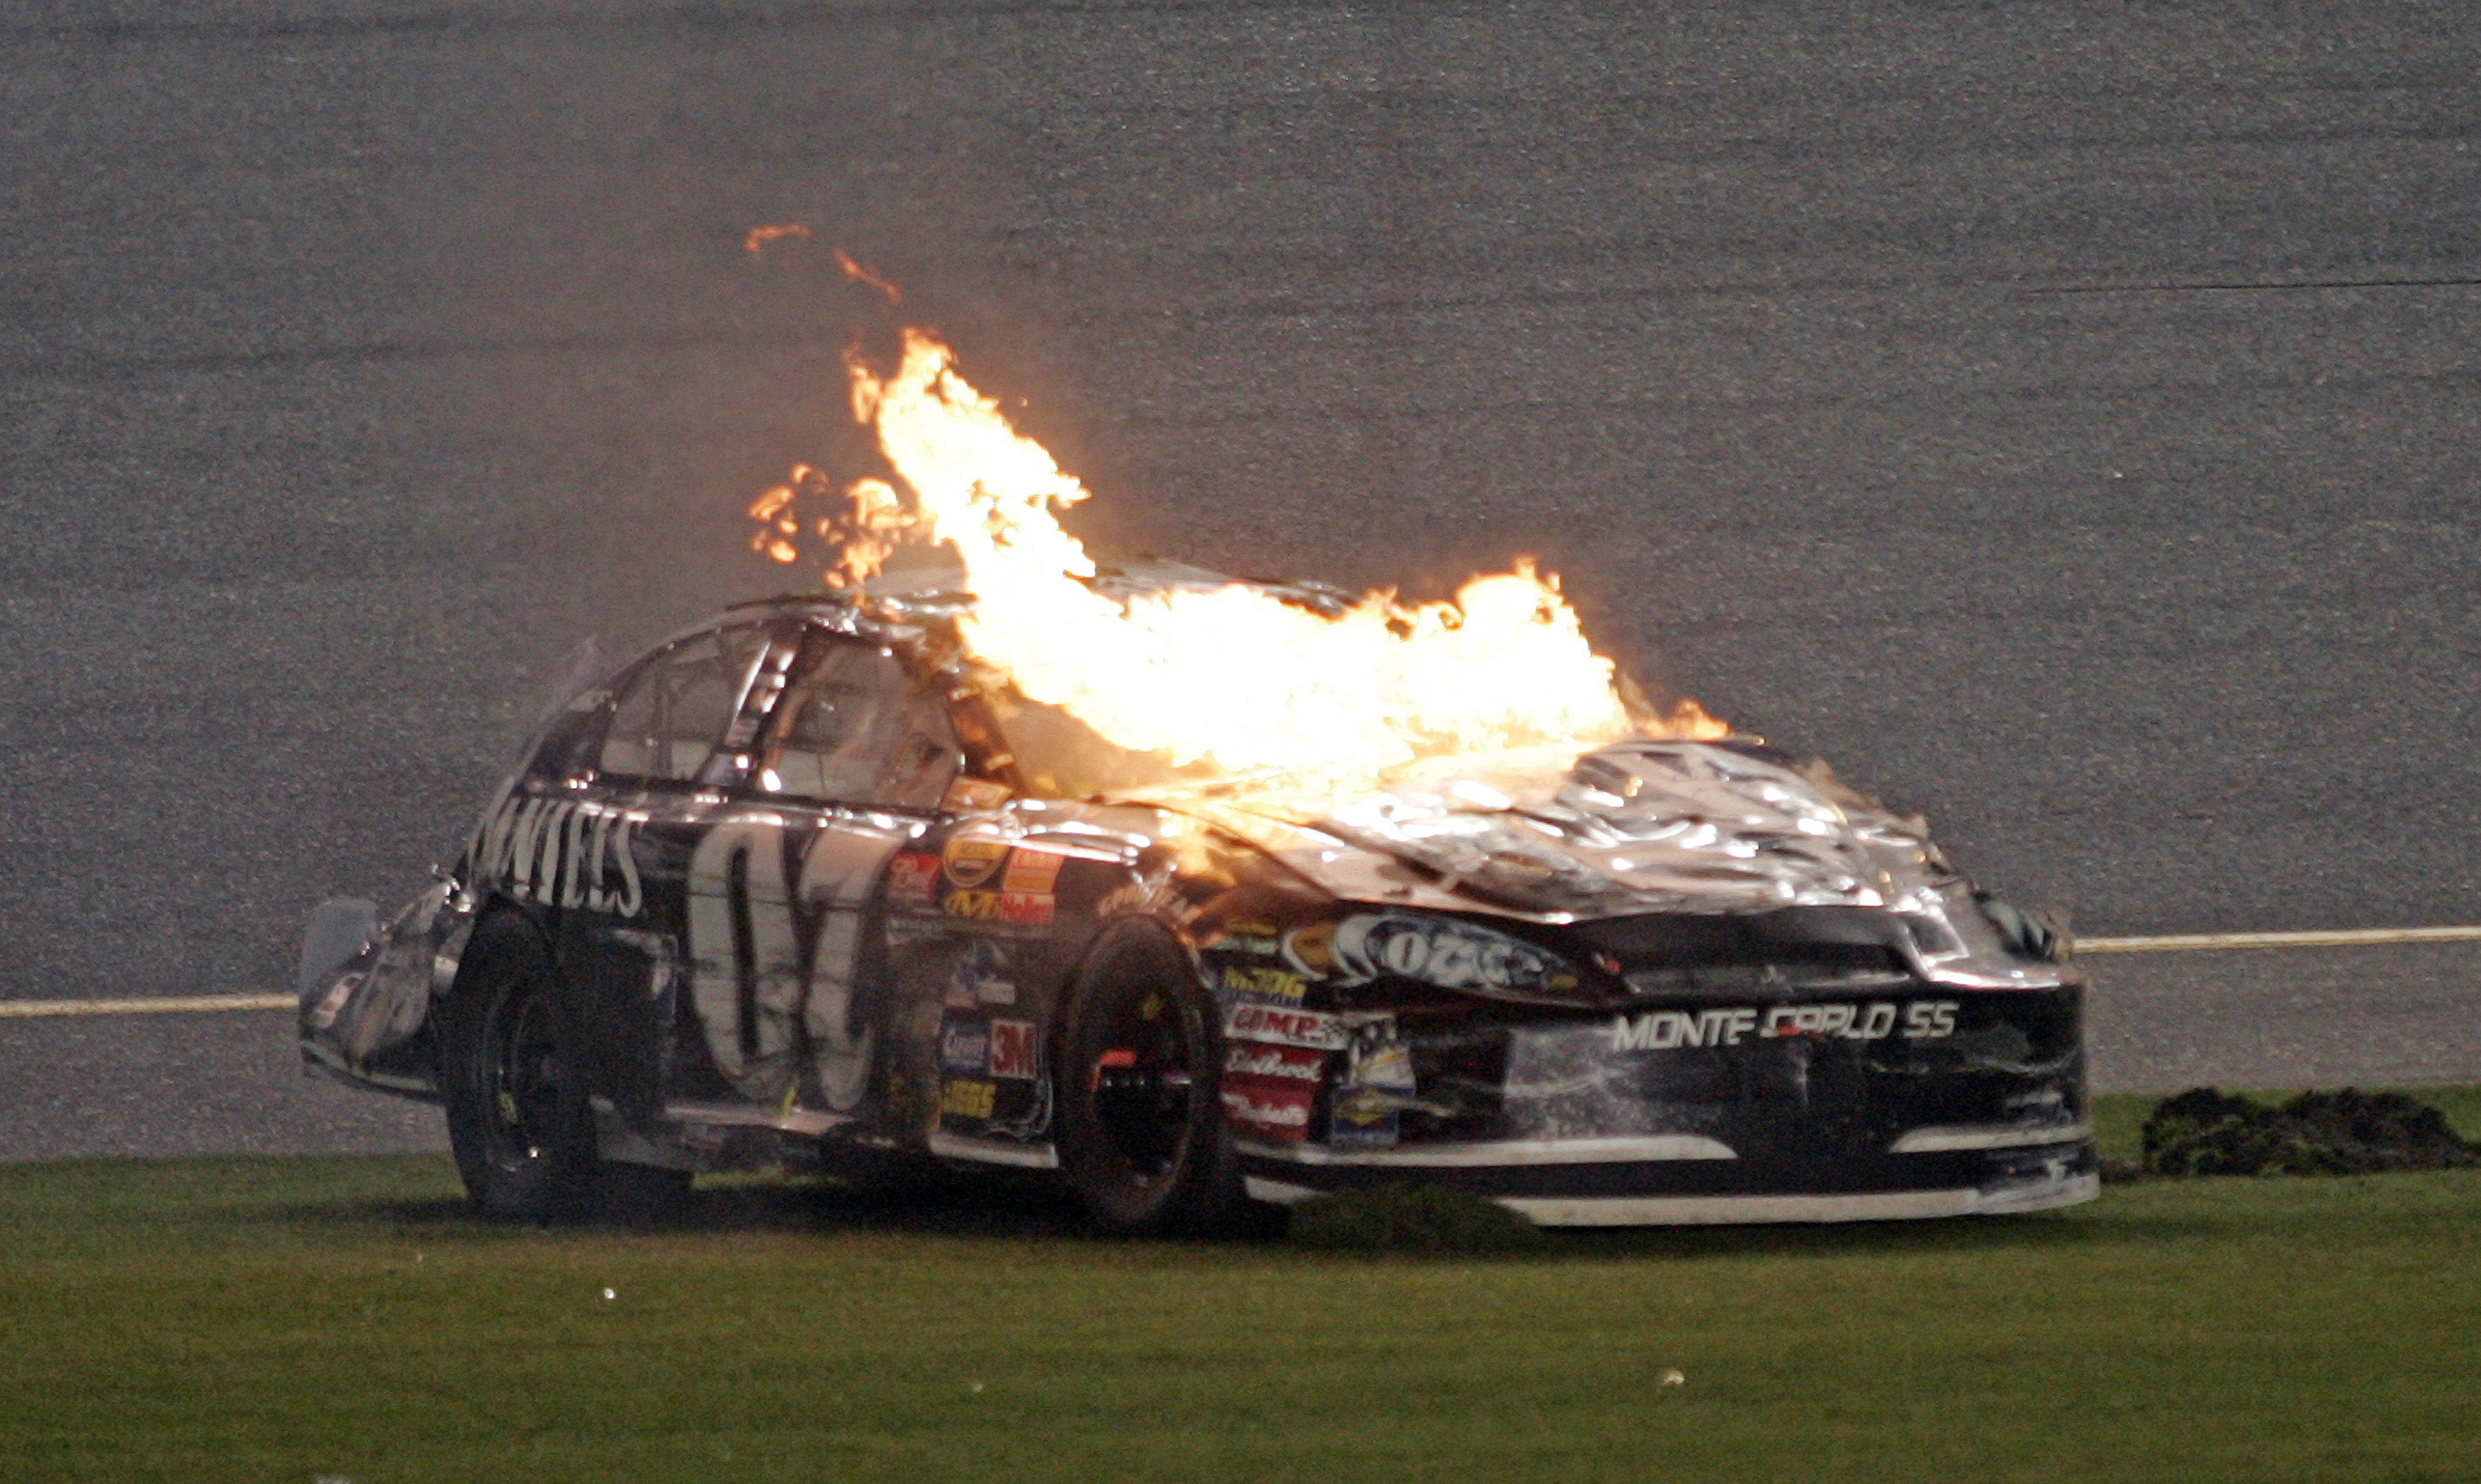 Clint Bowyer's car burnsafter a last lap crash in the NASCAR Nextel Cup Daytona 500 at Daytona International Speedway in Daytona Beach, Florida, Sunday, February 18, 2007. (Photo by Gregg Ellman/Fort Worth Star-Telegram/MCT via Getty Images)